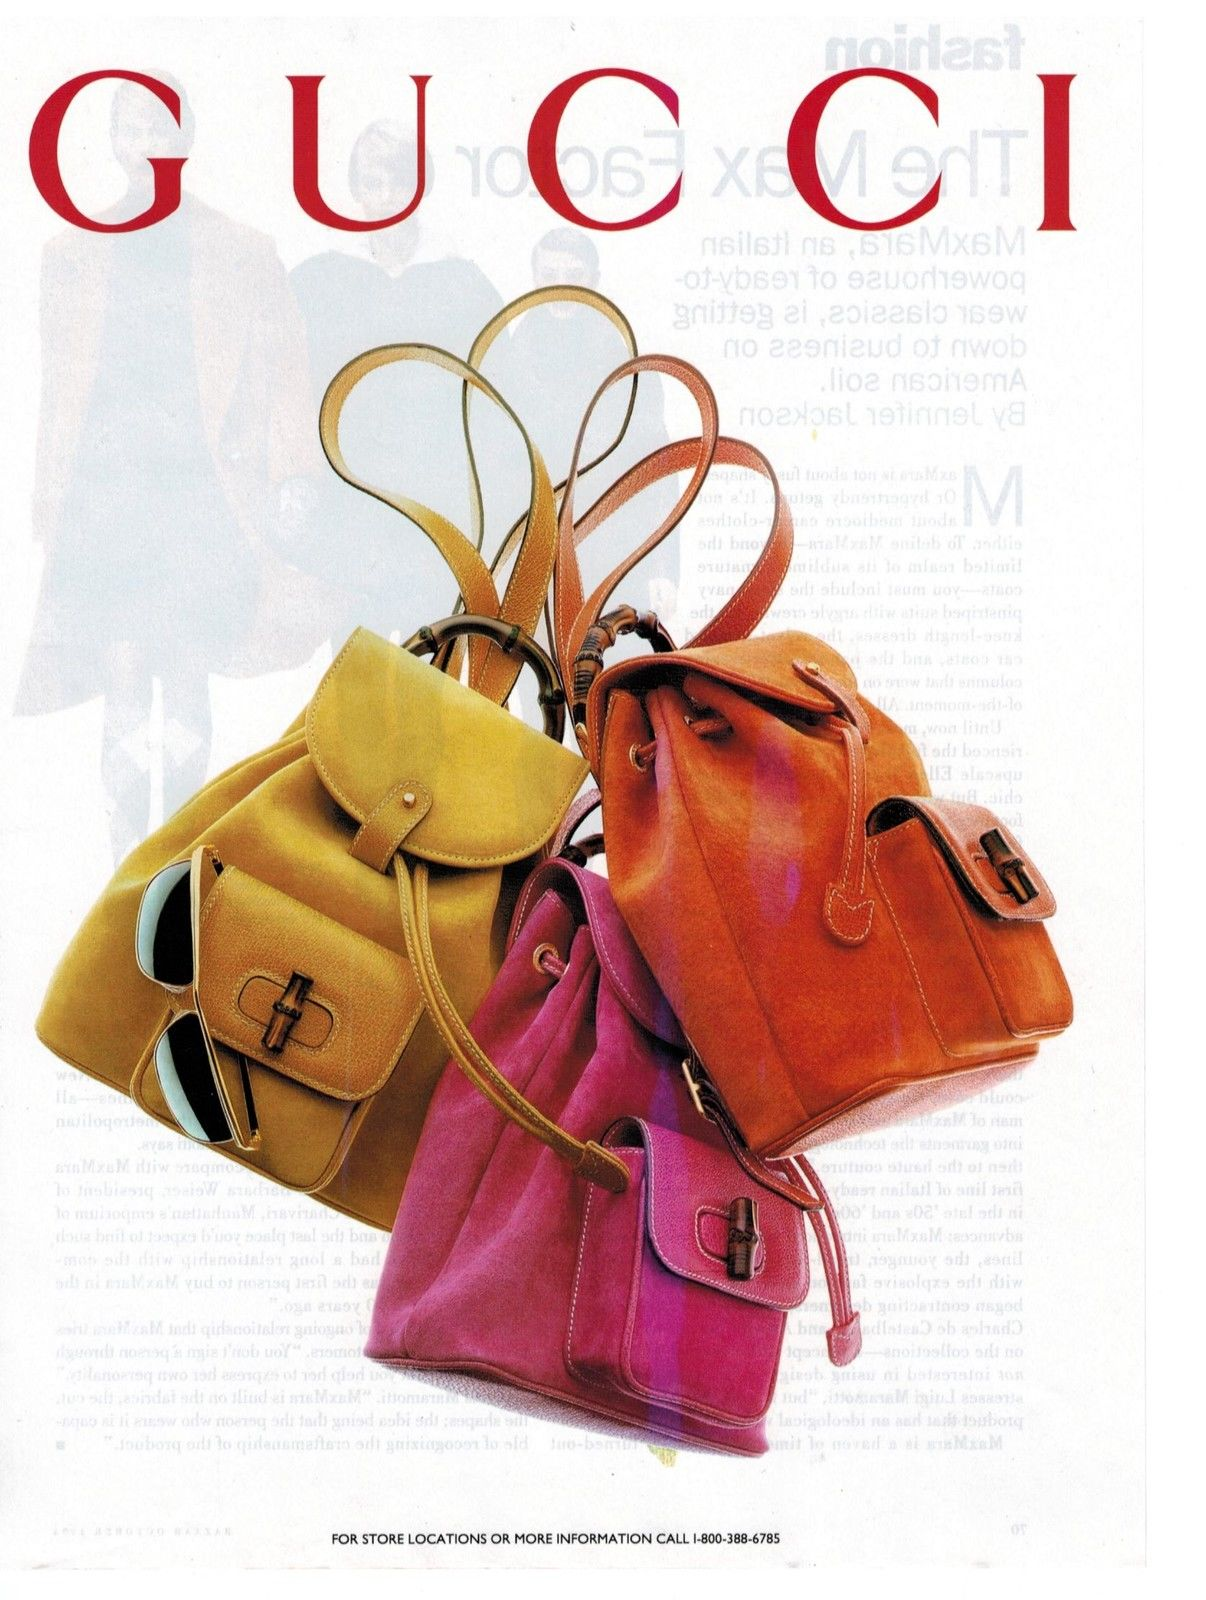 1994 Gucci suede bamboo backpacks in different colors print ad - Vintage Gucci advertising campaigns archive